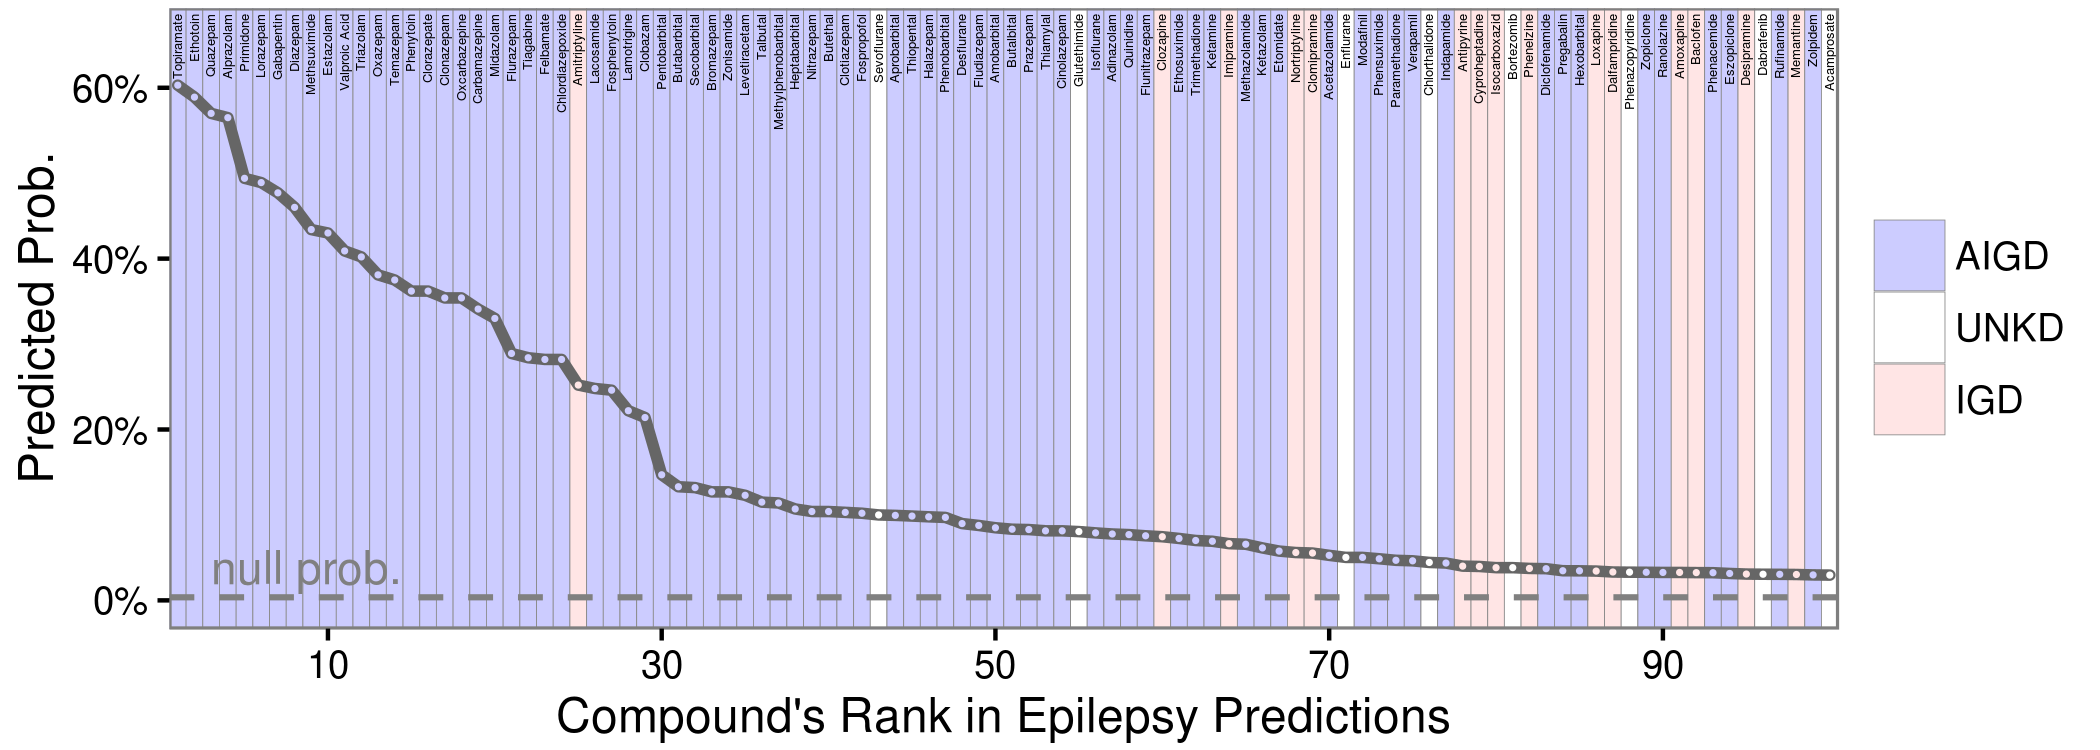 Project Rephetio Top Epilepsy Predictions with Compounds Labeled